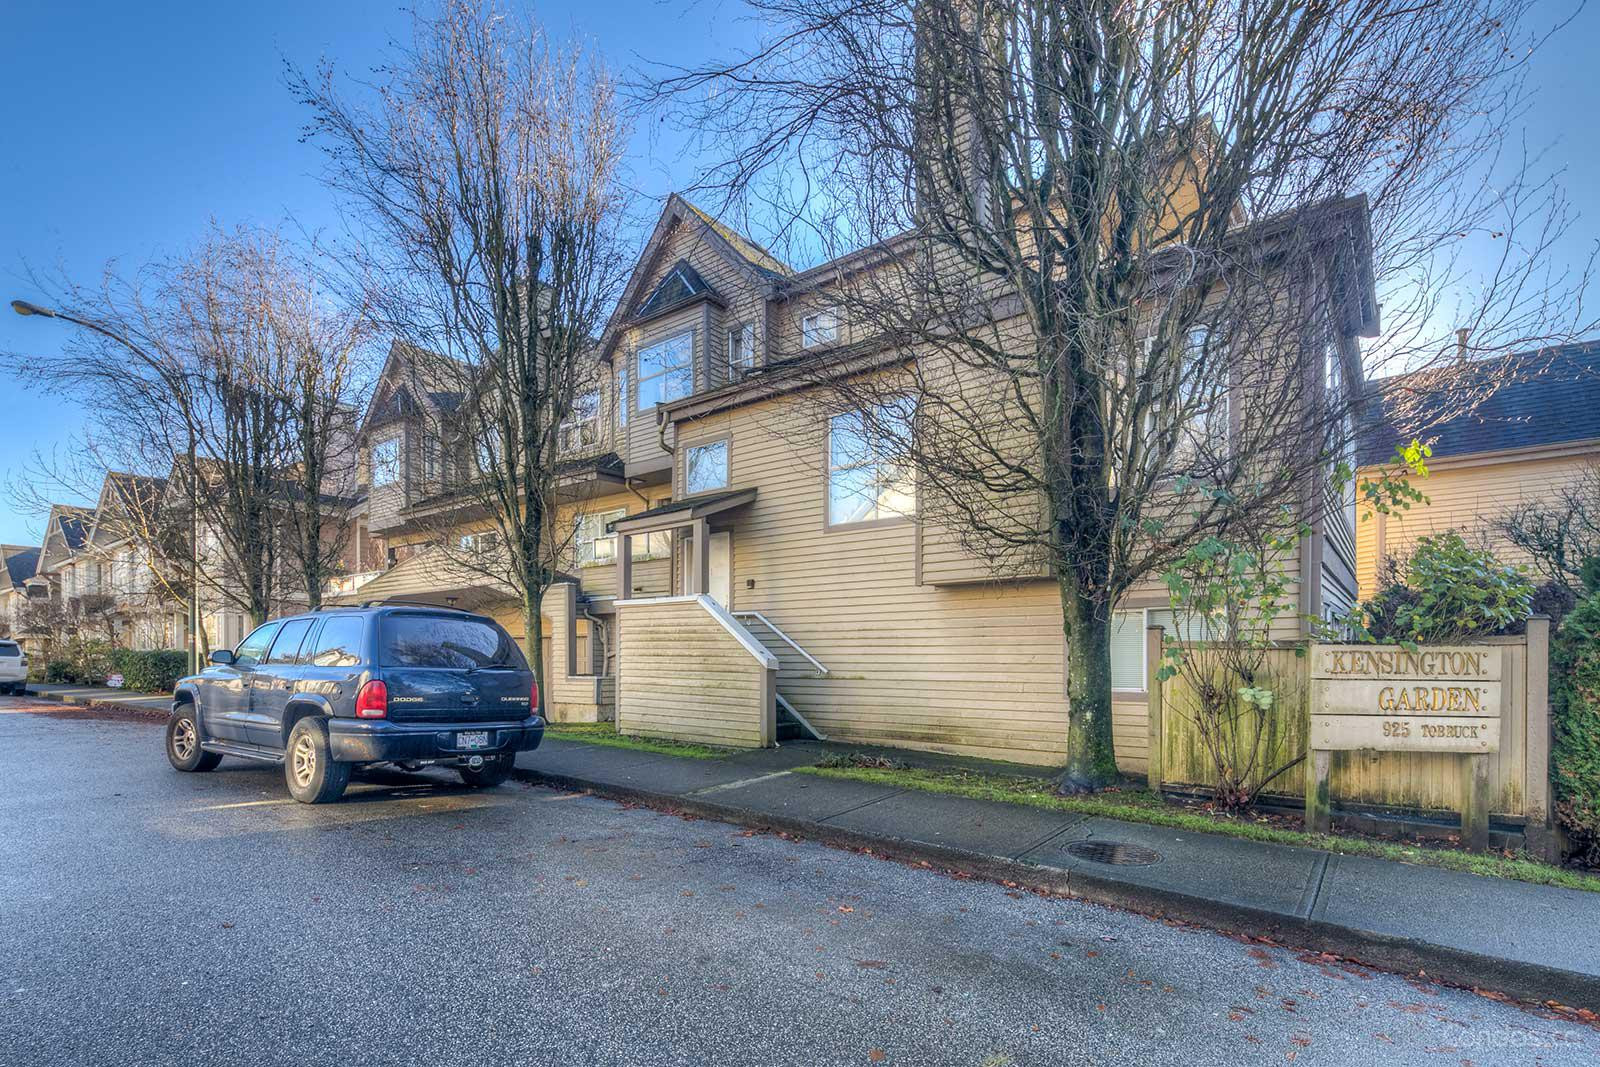 Kensington Garden at 925 Tobruck Ave, North Vancouver City 0